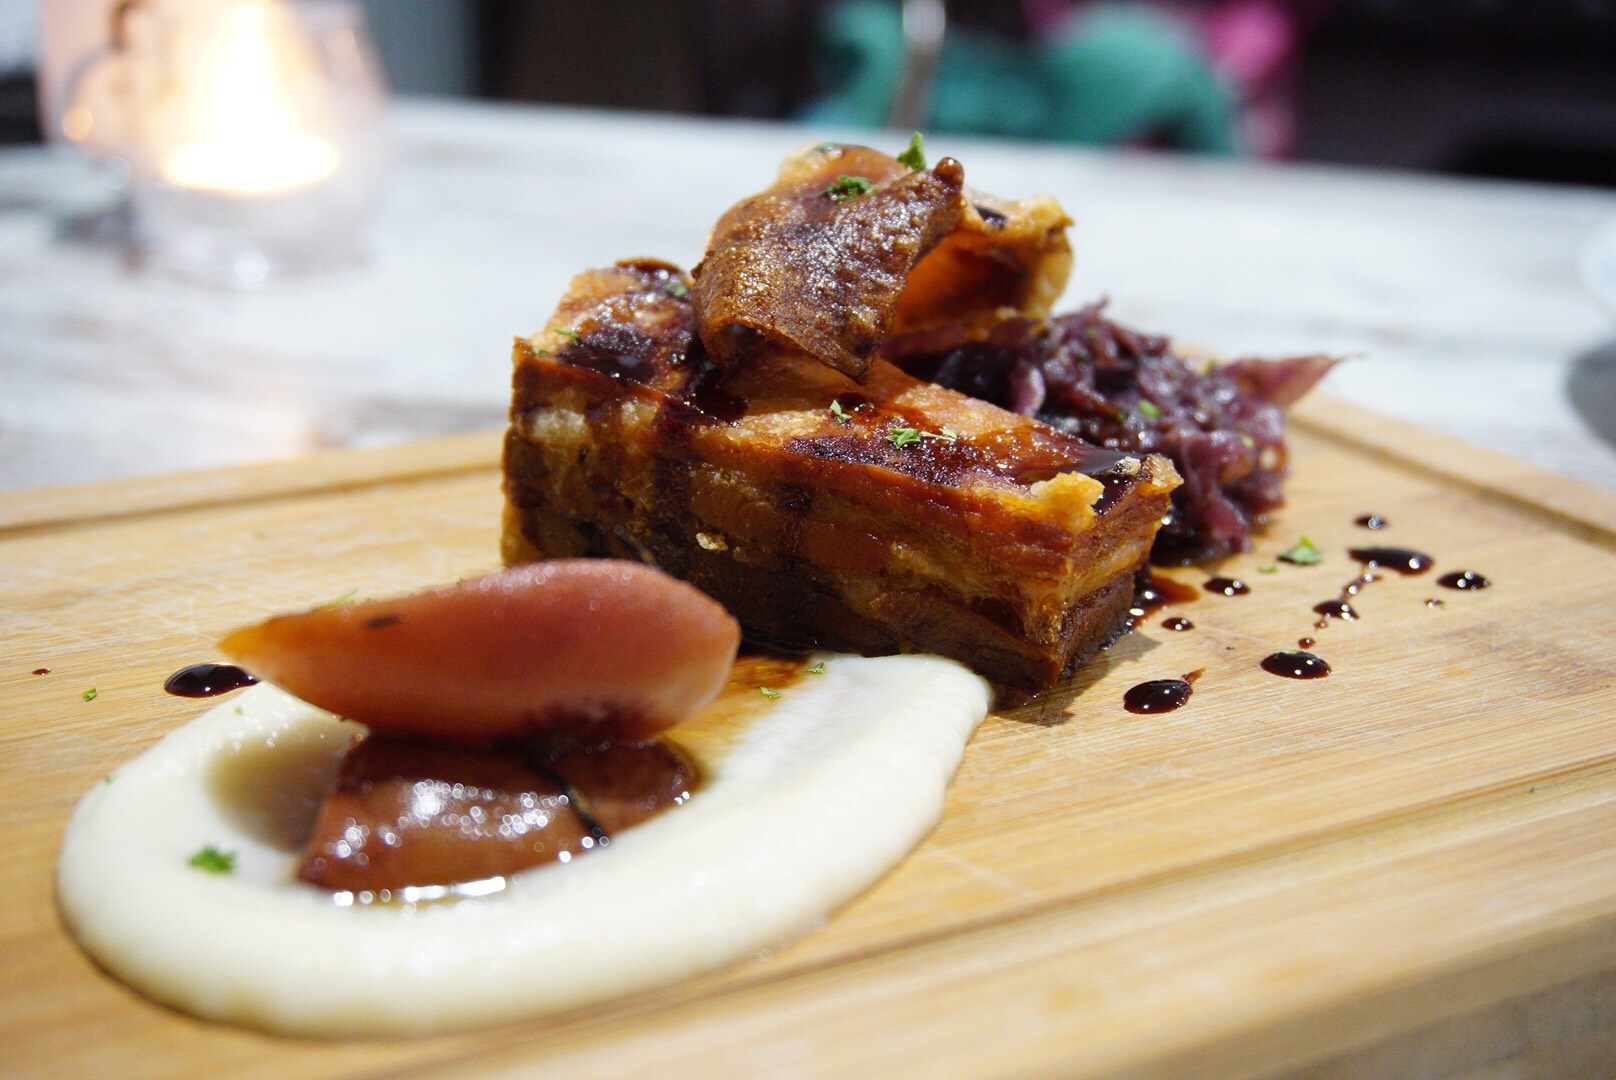 Roast pork belly with cauliflower puree, braised red cabbage and pulled pork croquette